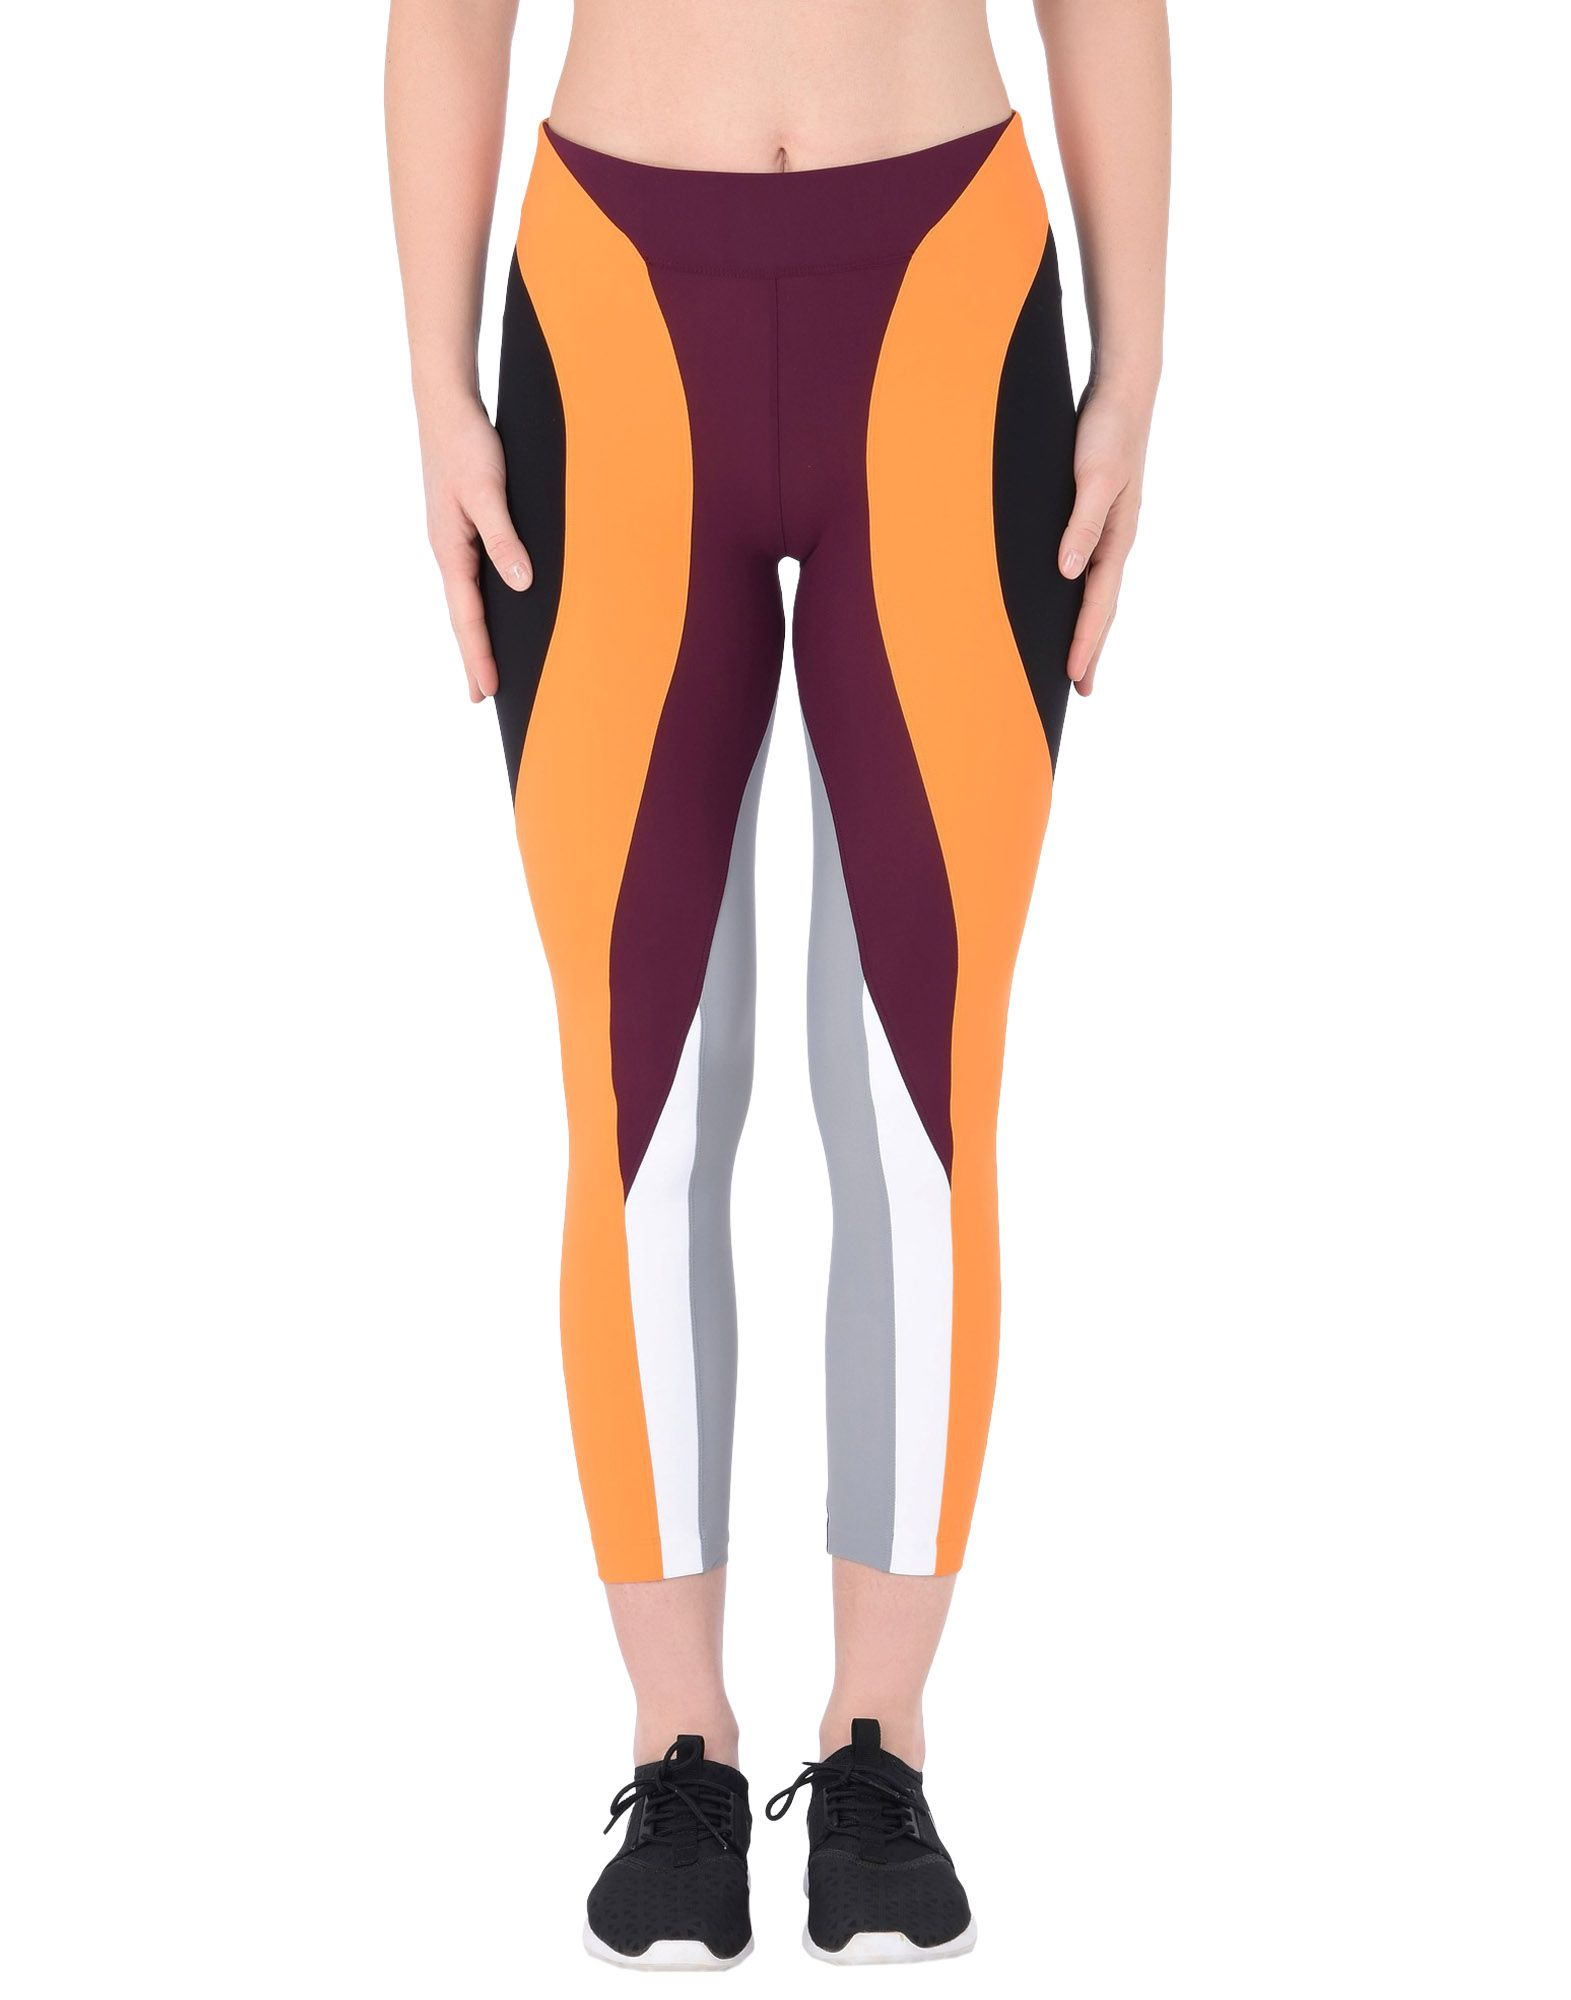 Leggings No Ka 'Oi Kimi 7/8 Leggings In Active Microfiber - Donna - Acquista online su KBn39